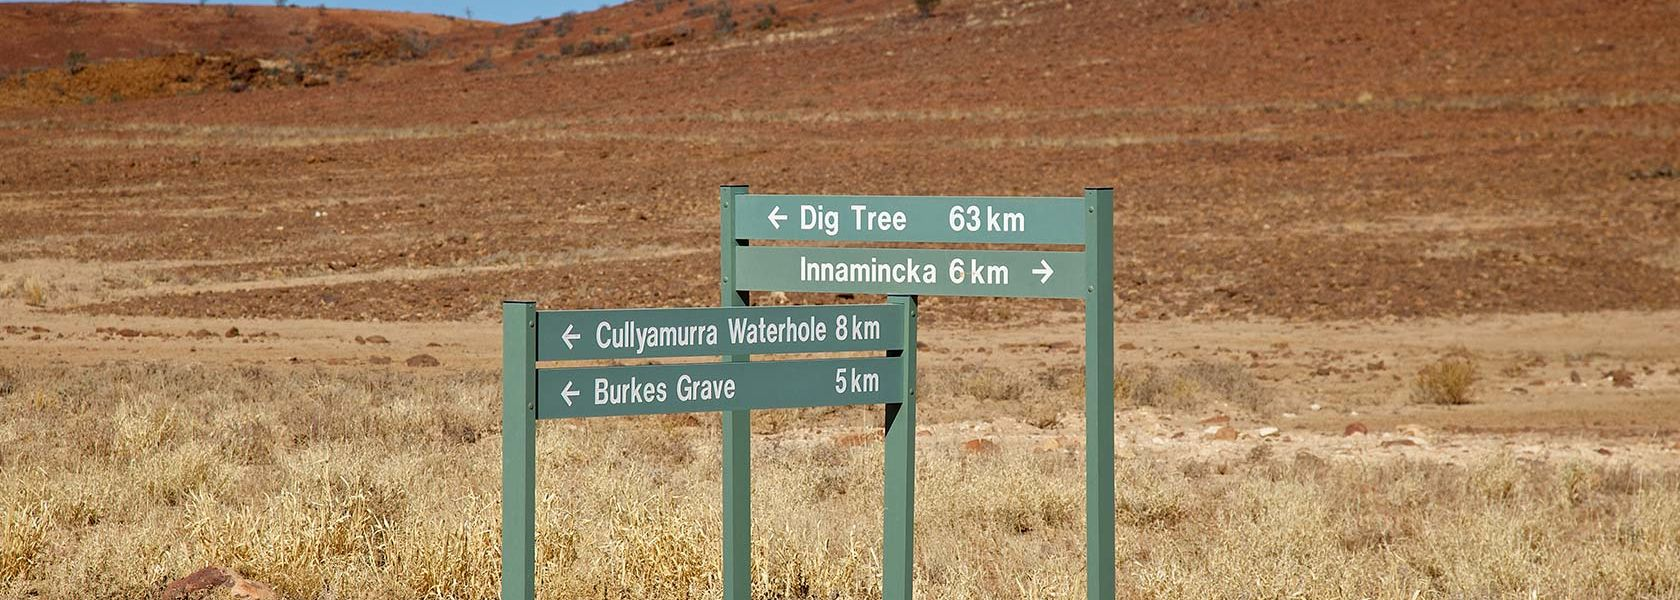 Red Sky releases Innamincka contingent resources estimate